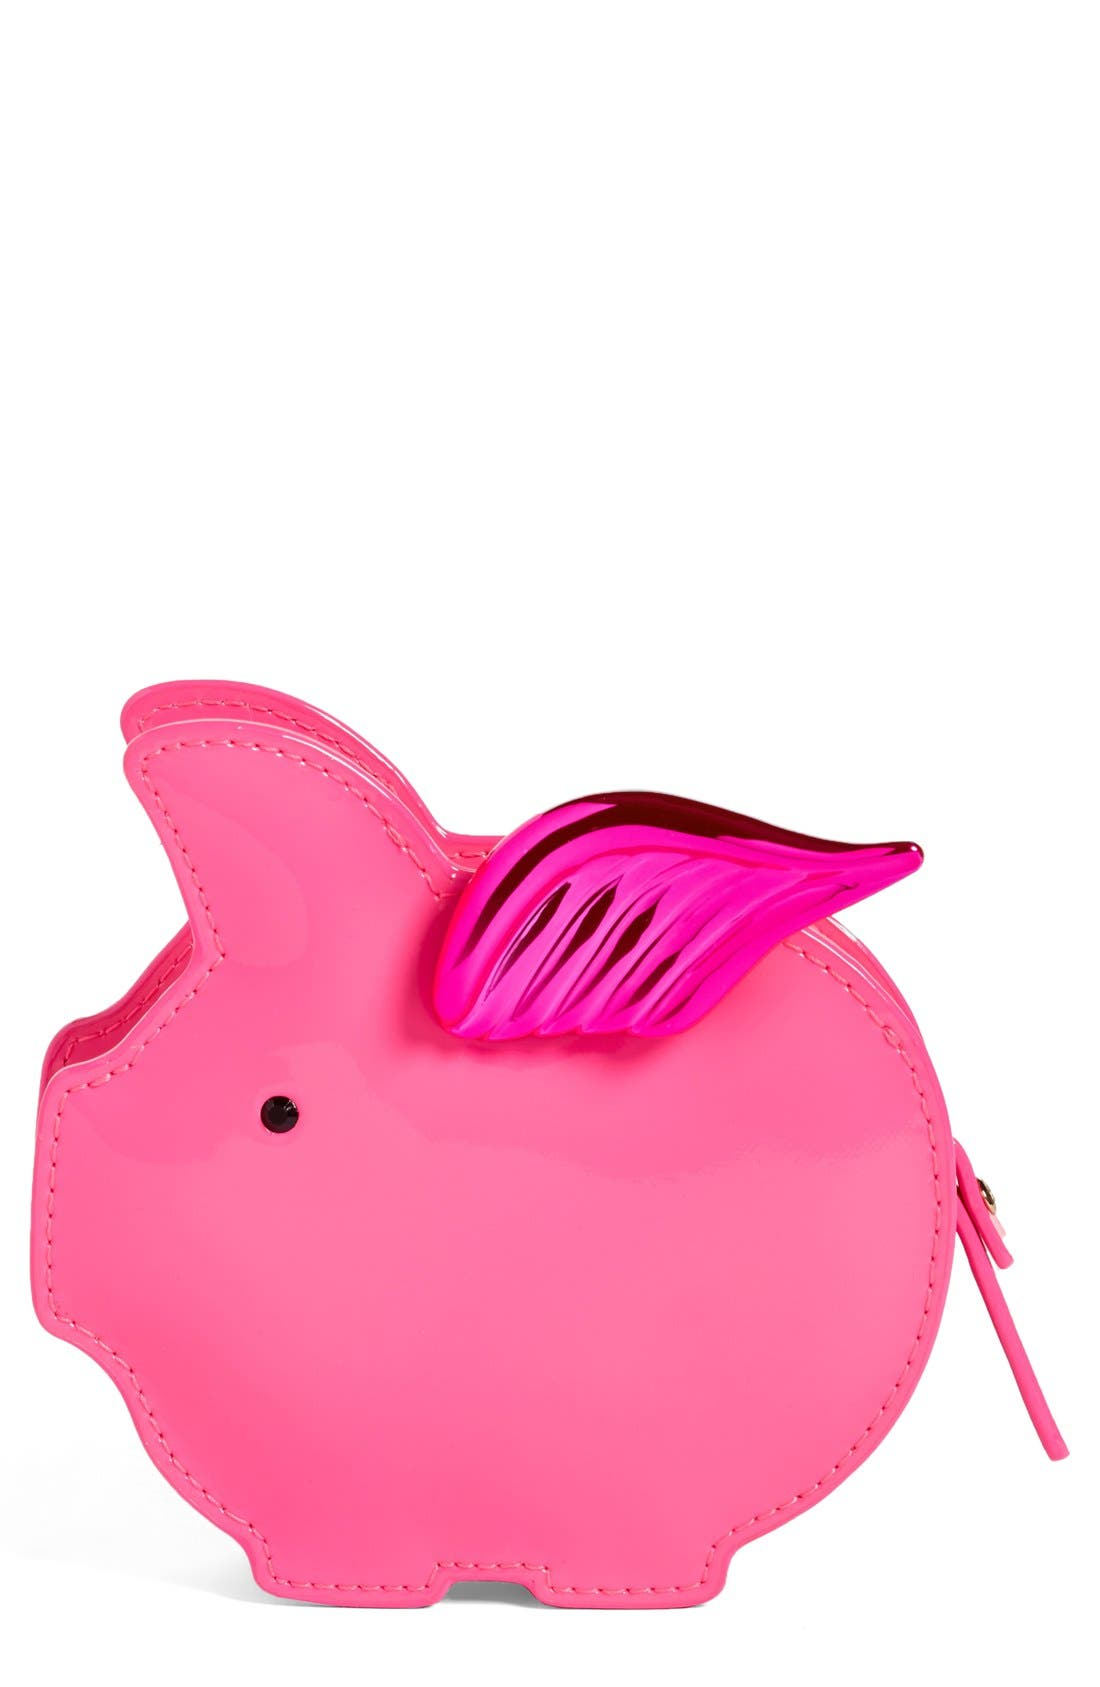 Alternate Image 1 Selected - kate spade new york flying pig coin purse